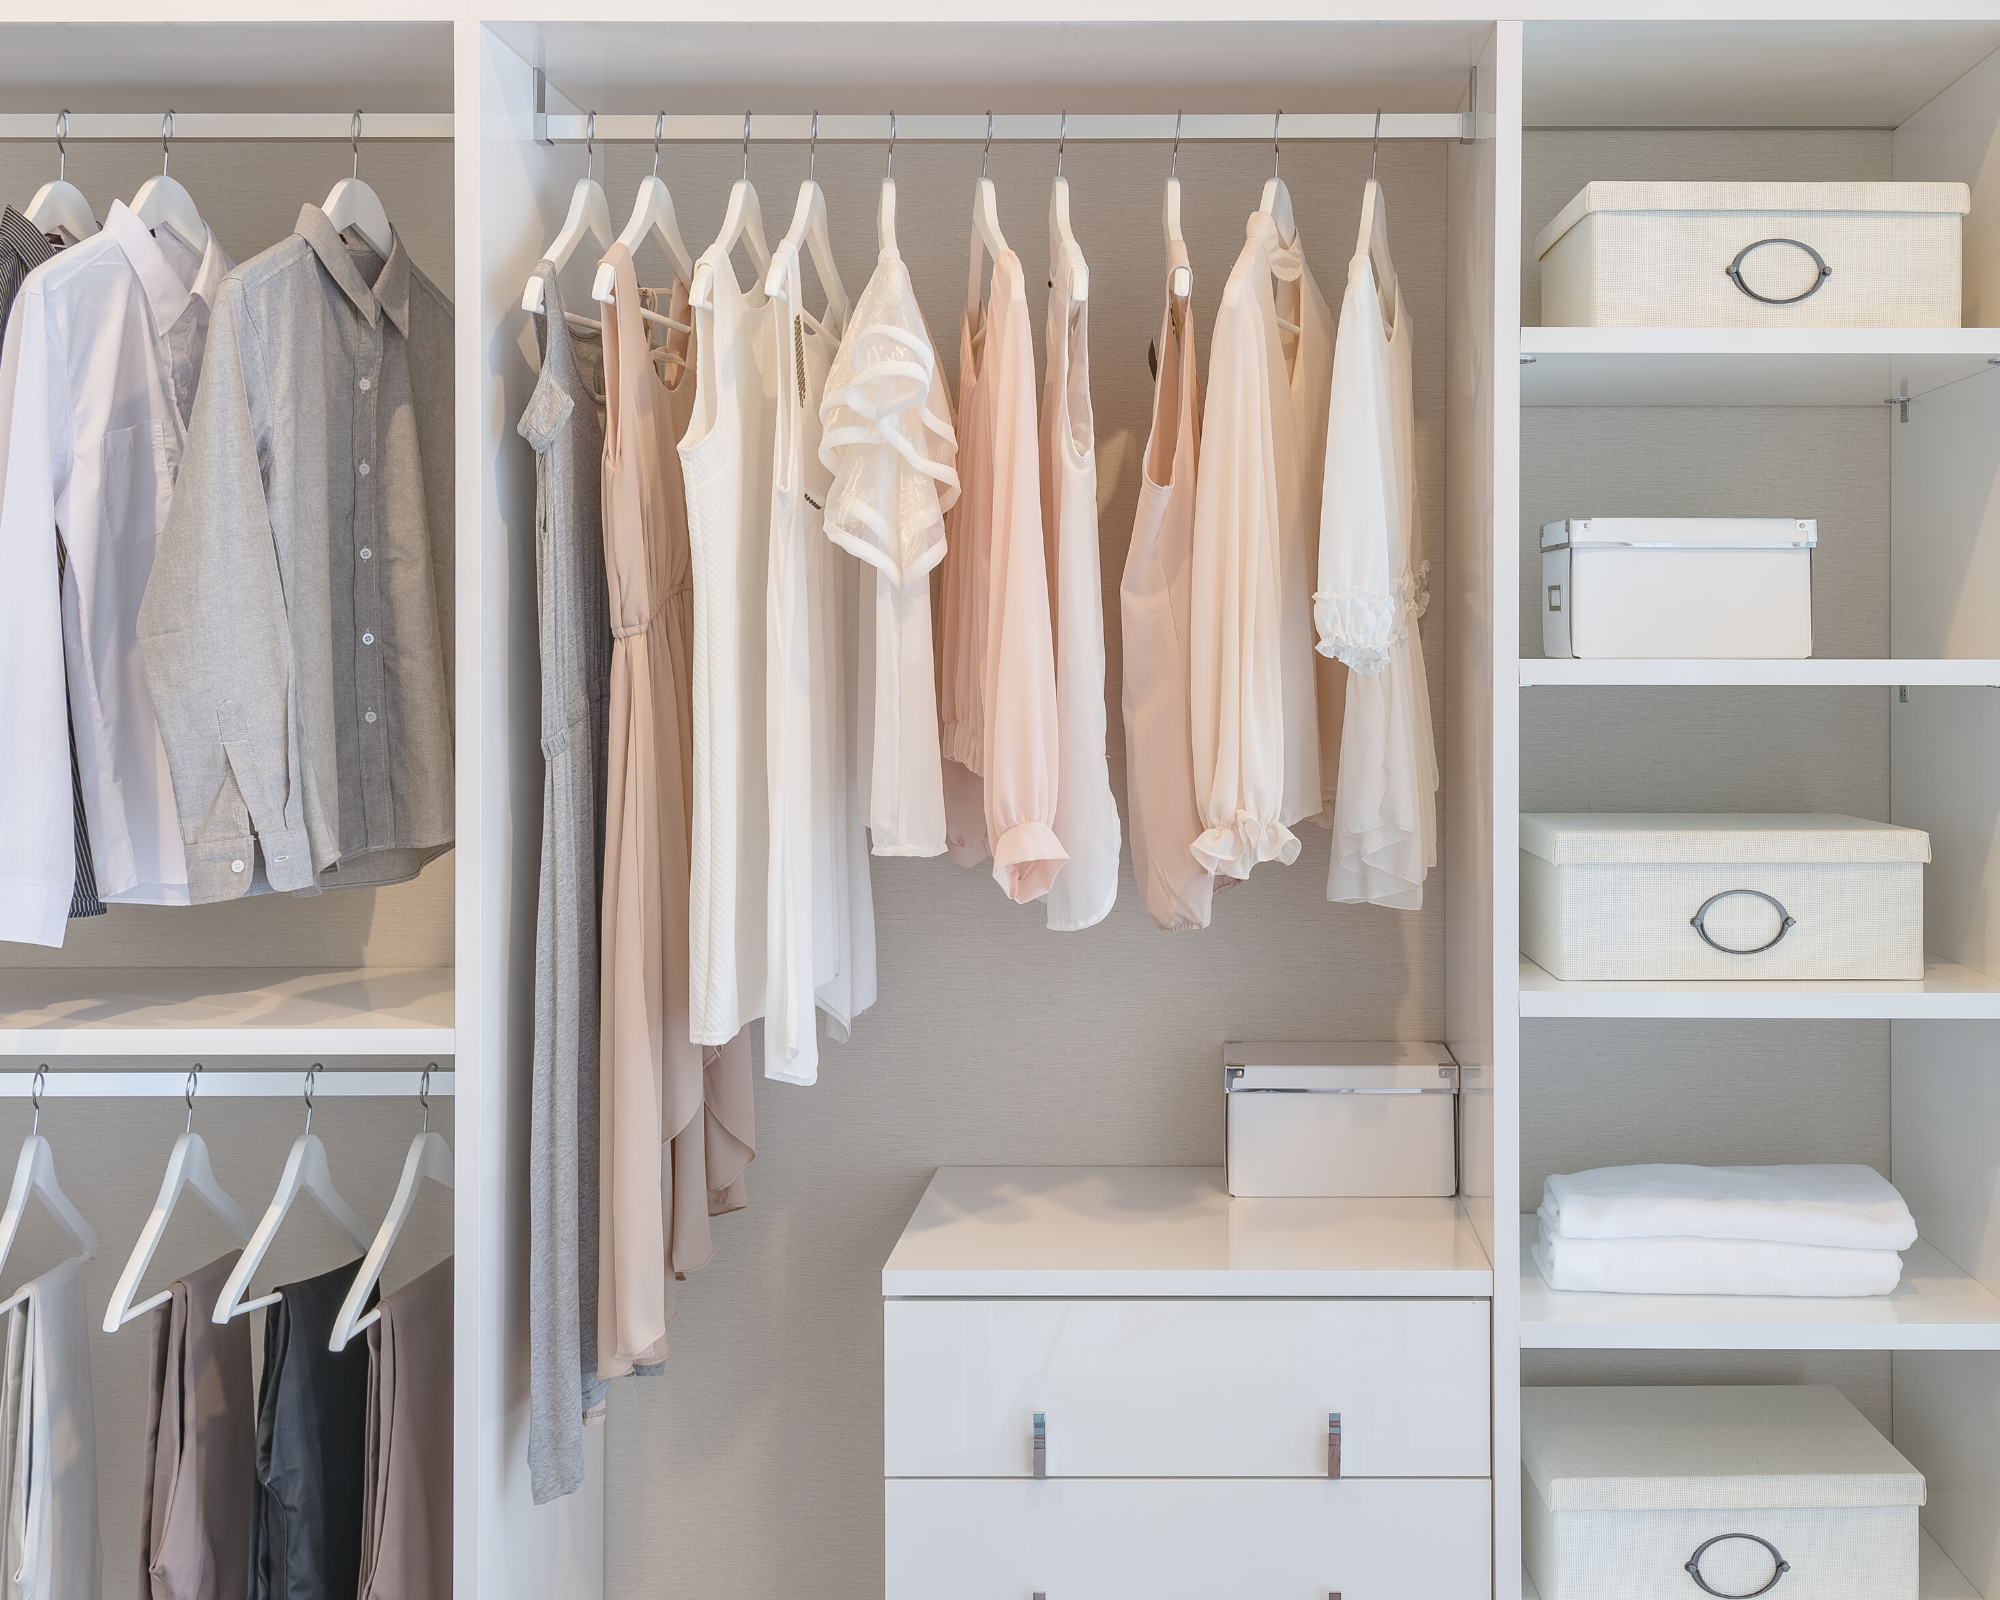 organized closet with white and pink shirts, a dresser, and white boxes